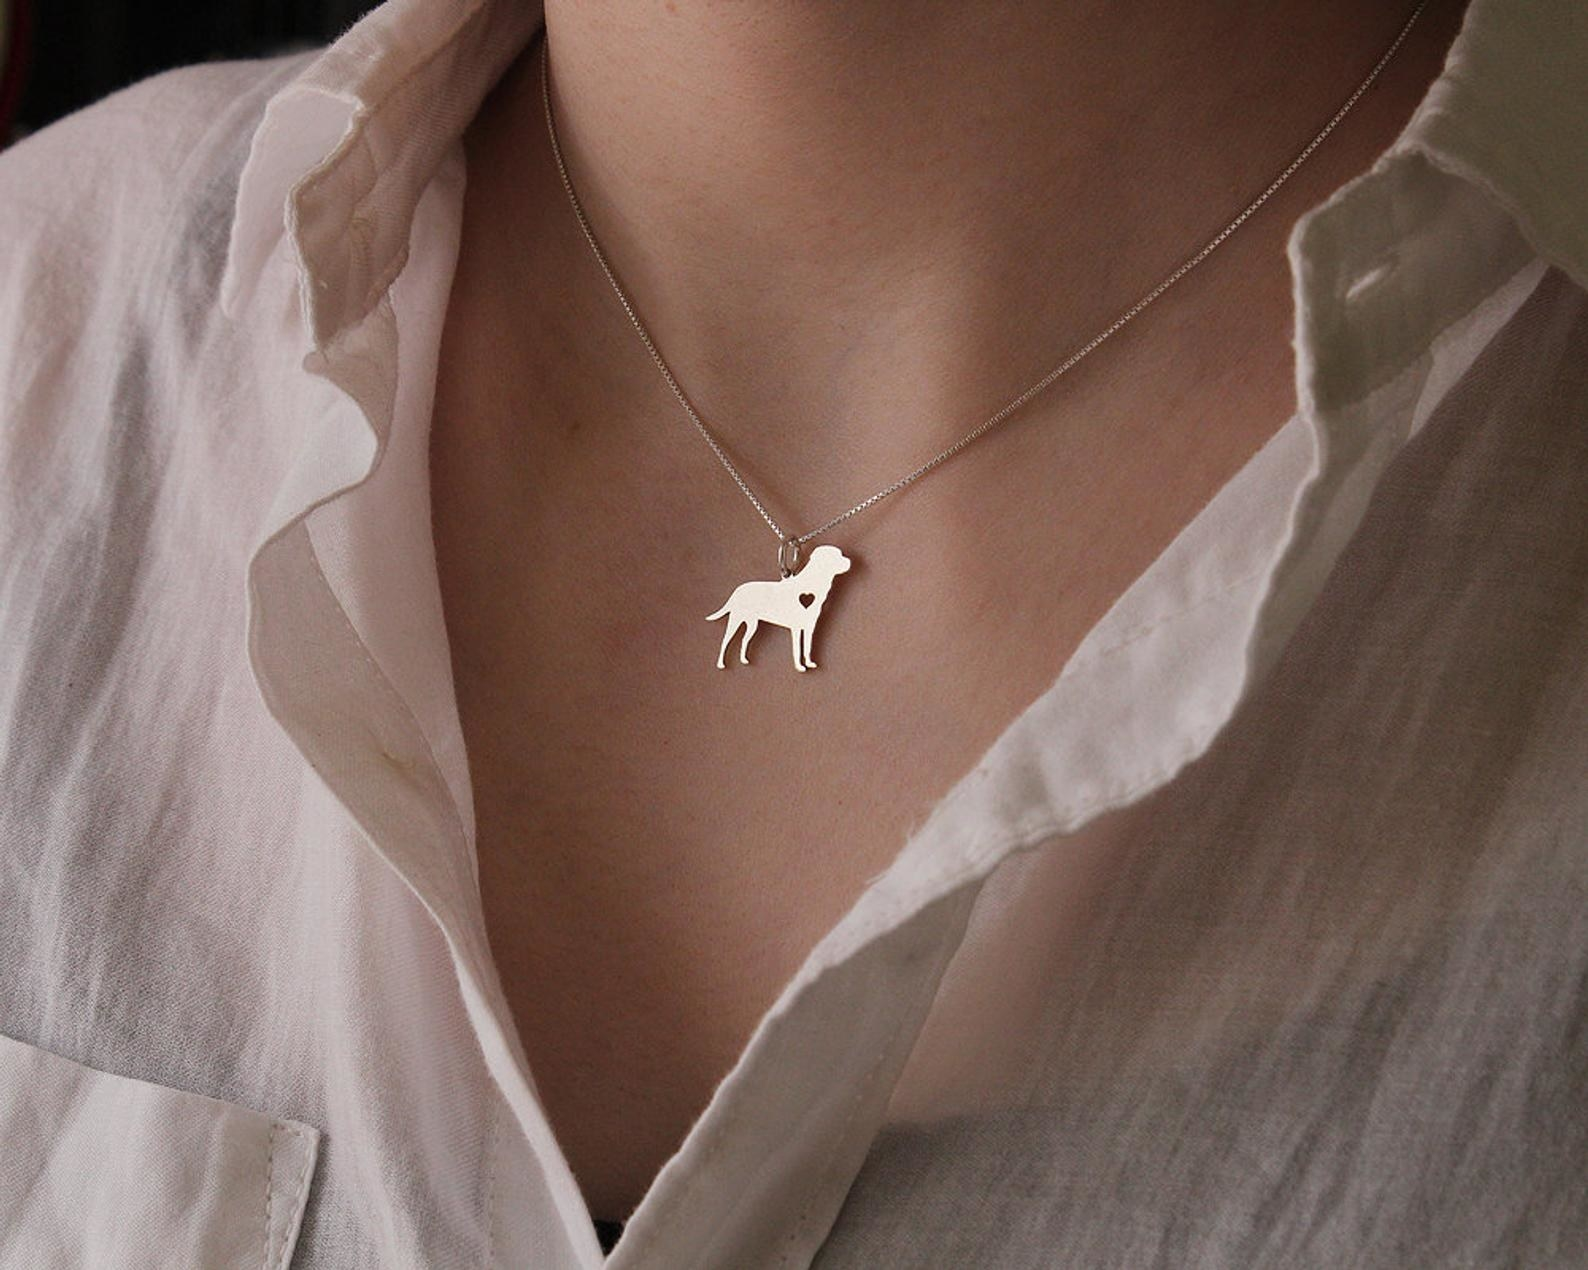 Person wearing a silver necklace with a labrador pendant